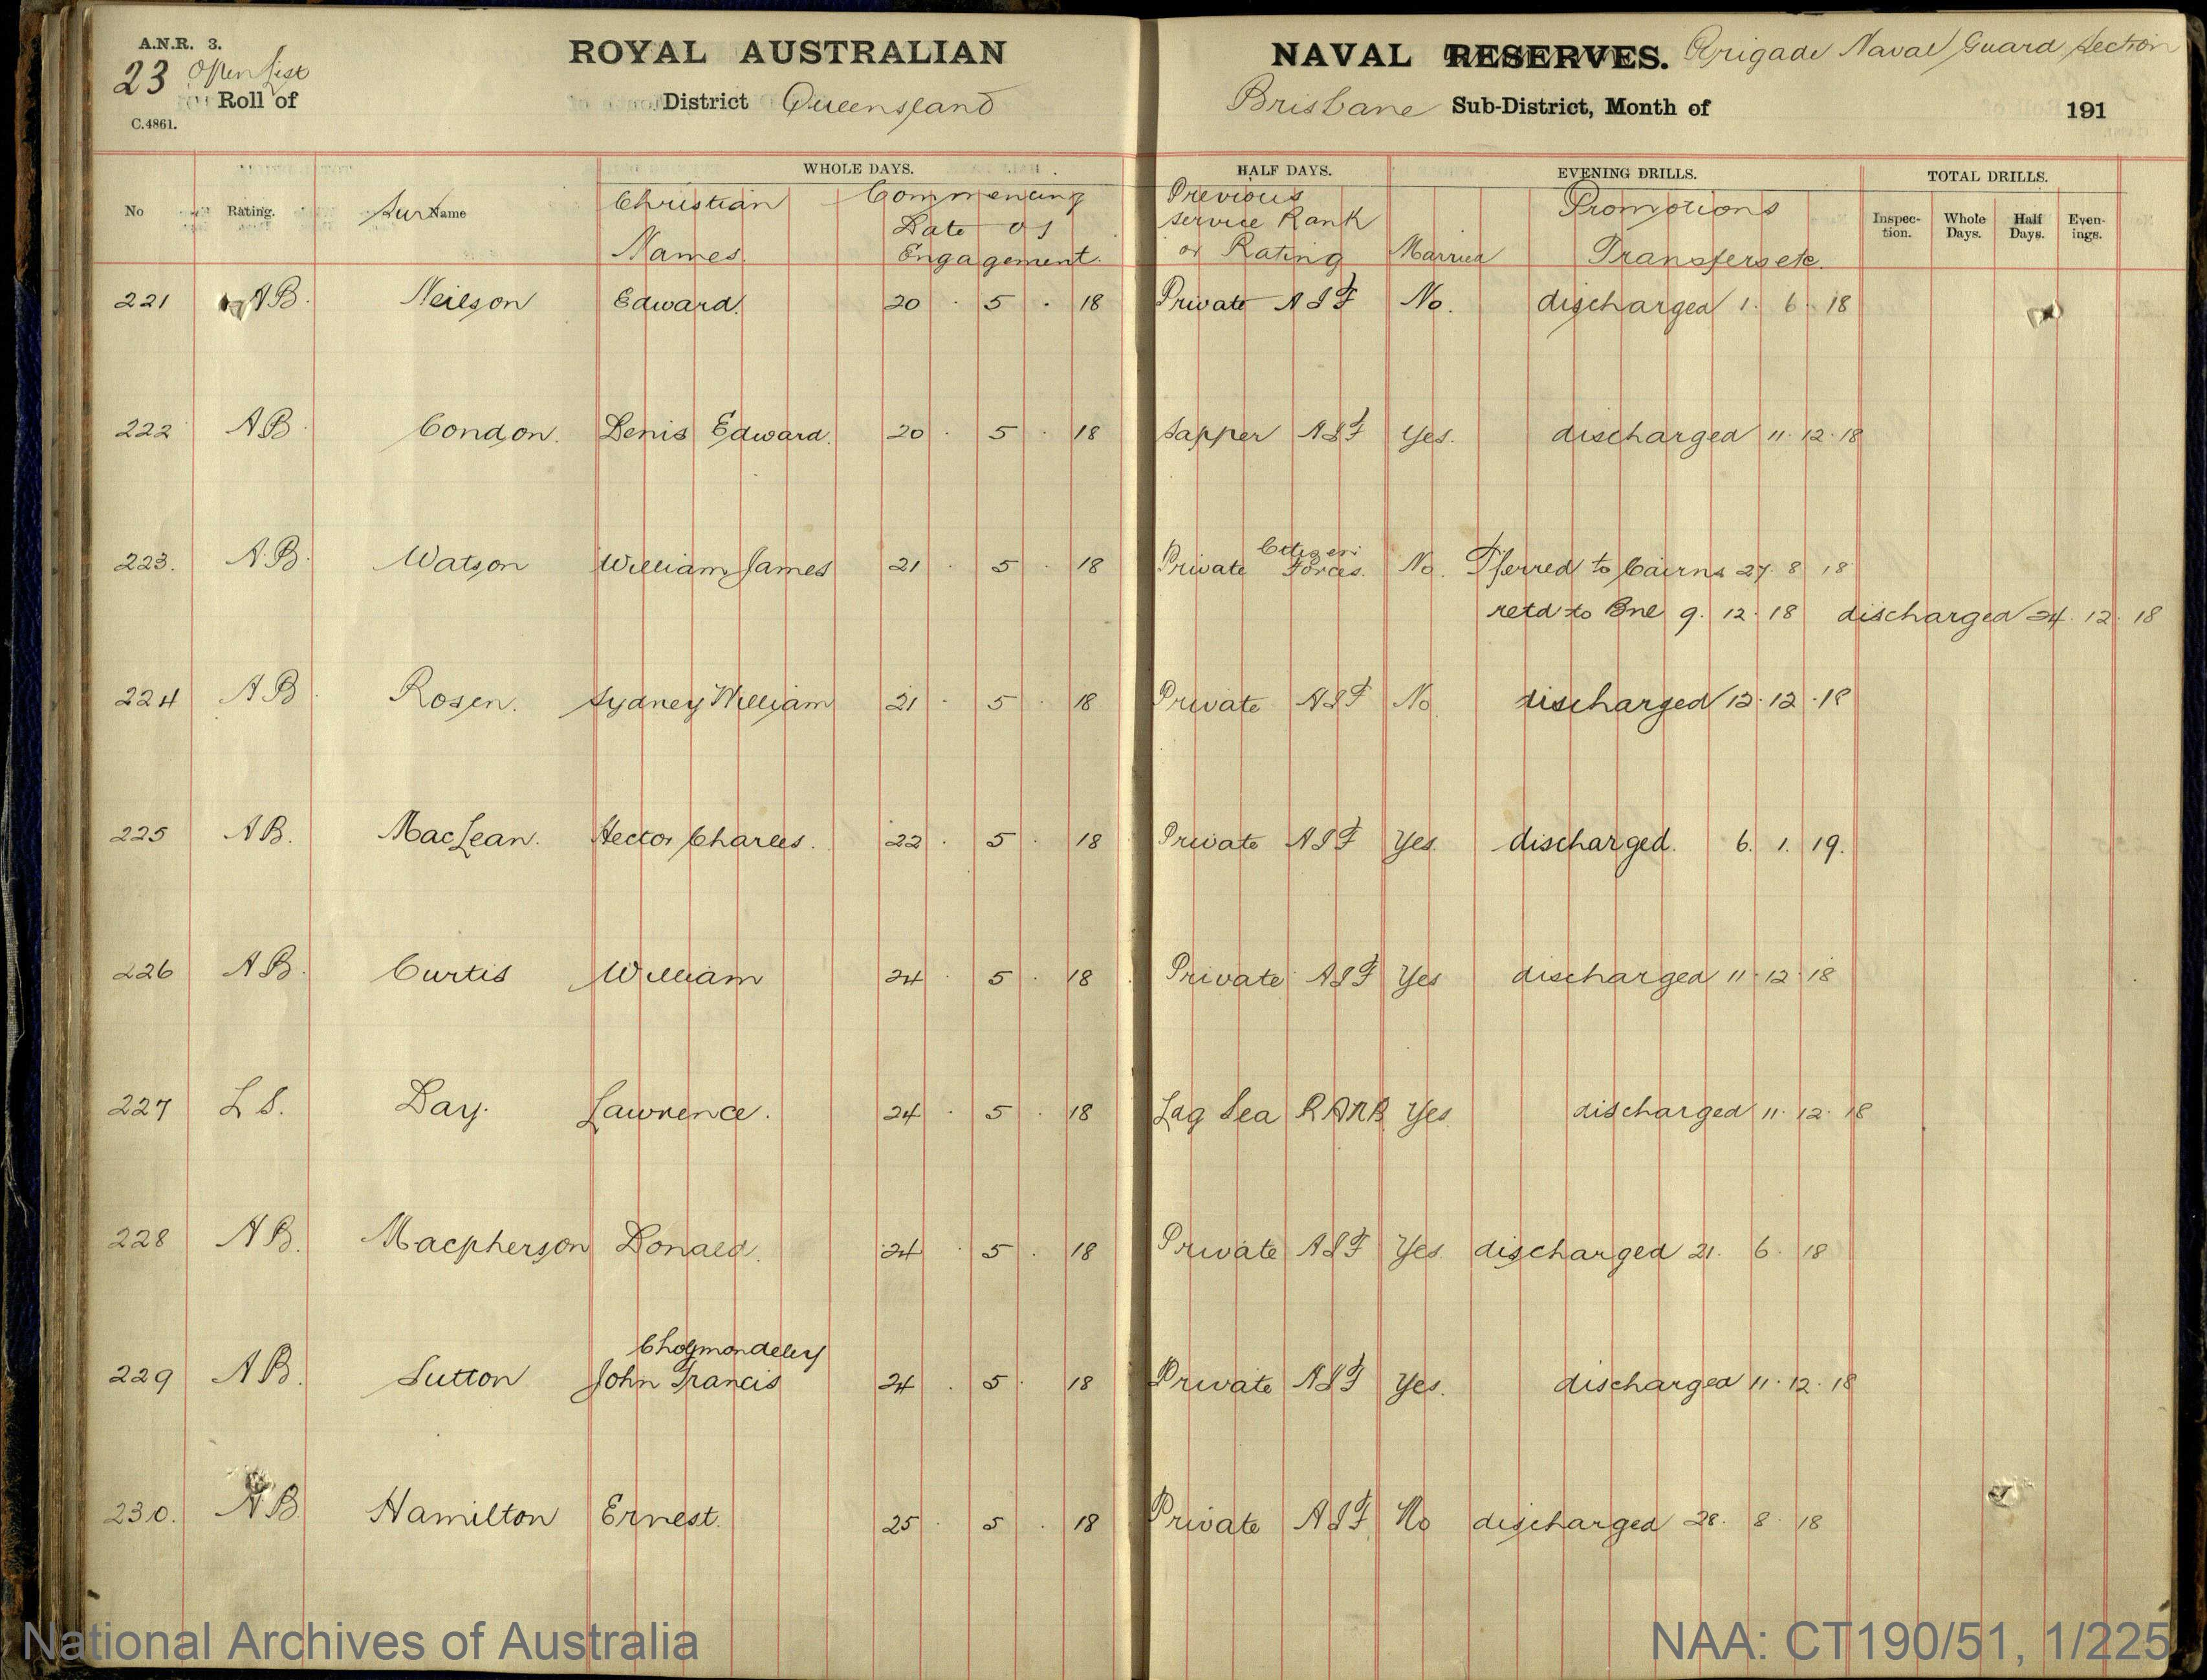 SURNAME - MacLEAN;  GIVEN NAME(S) - Hector Charles;  OFFICIAL NUMBER - 225;  DATE OF BIRTH - [Unknown];  PLACE OF BIRTH - [Unknown];  NEXT OF KIN - [Unknown];  SERVICE/STATION - Queensland;  REGISTRATION DATE -  22 May 1918